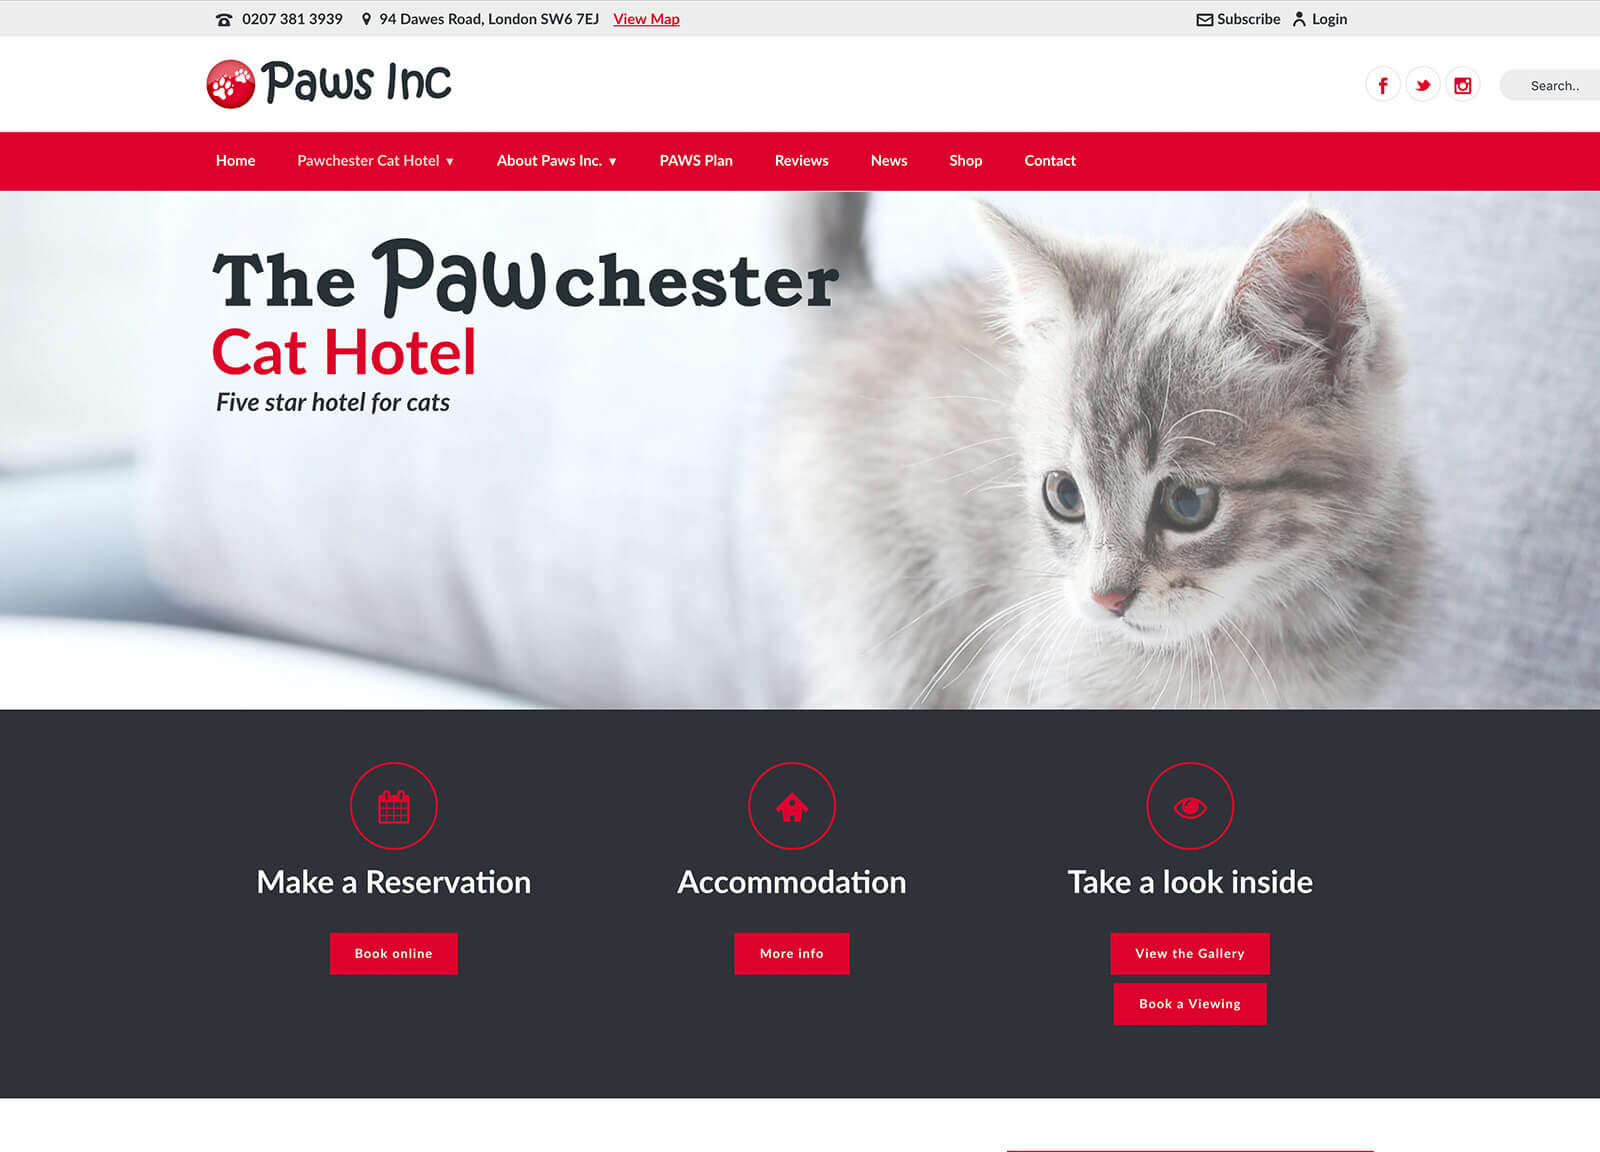 Cat hotel website design - Main cat hotel page